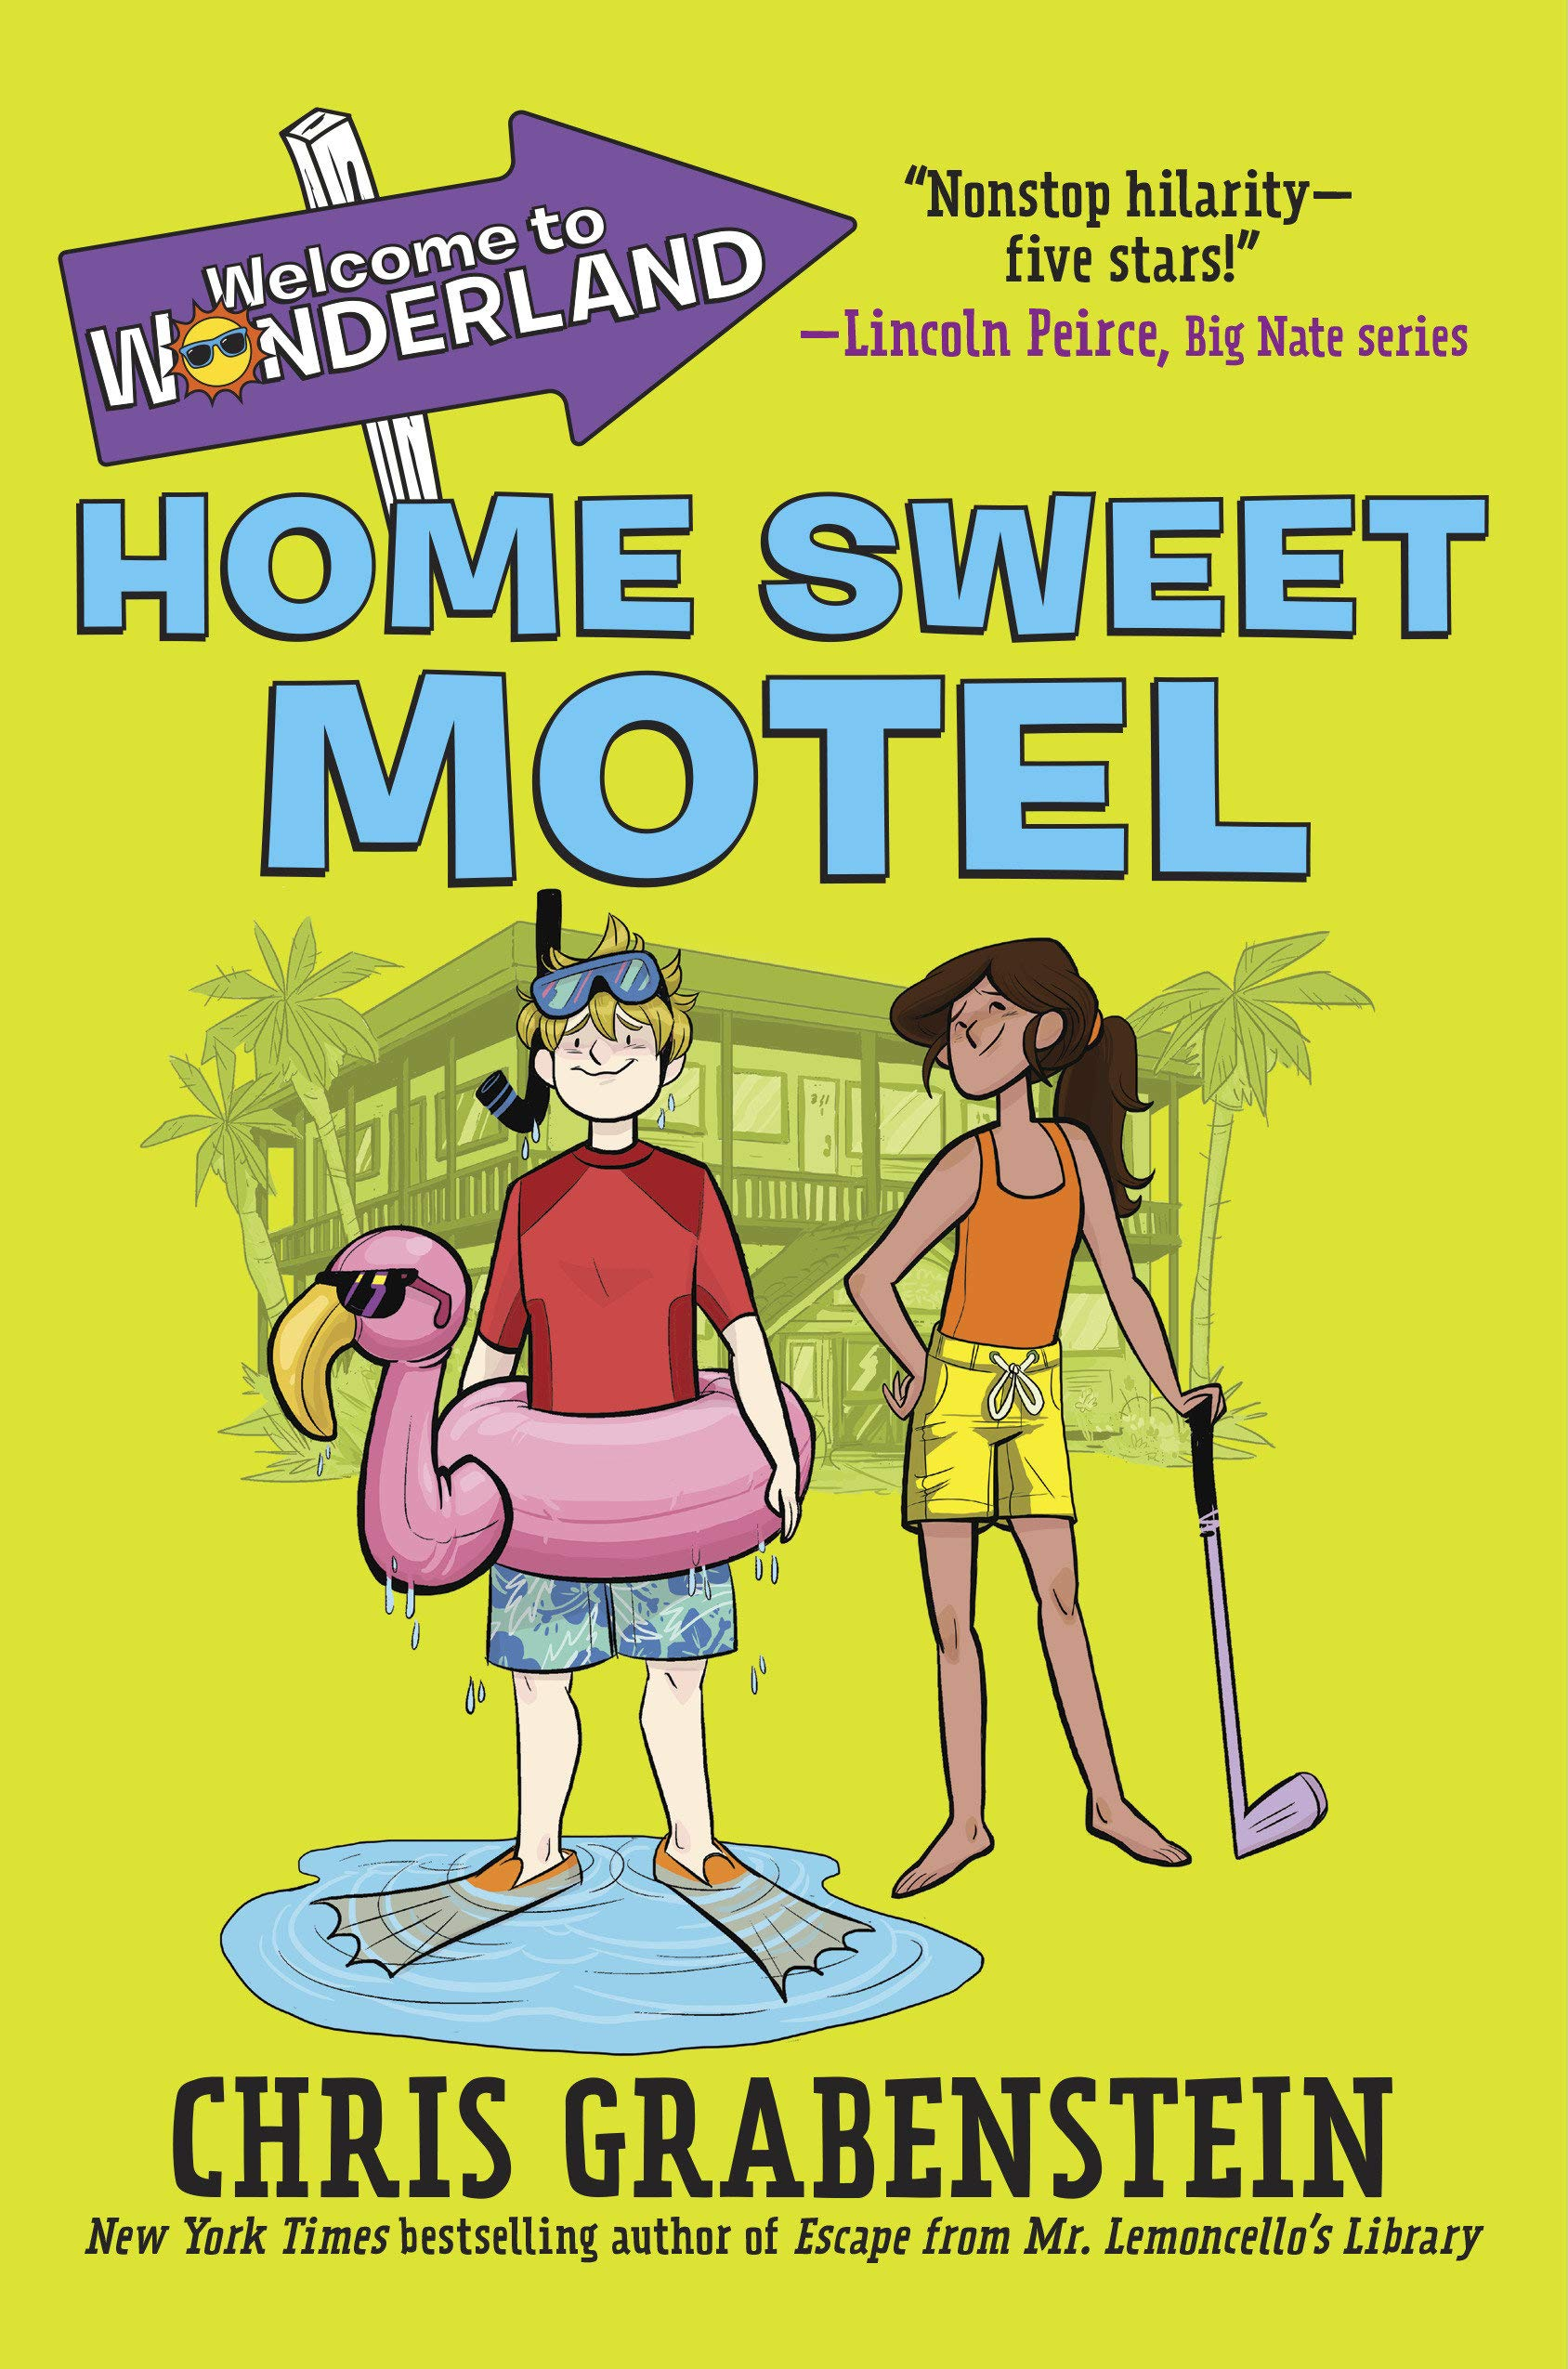 Download Welcome to Wonderland #1: Home Sweet Motel PDF